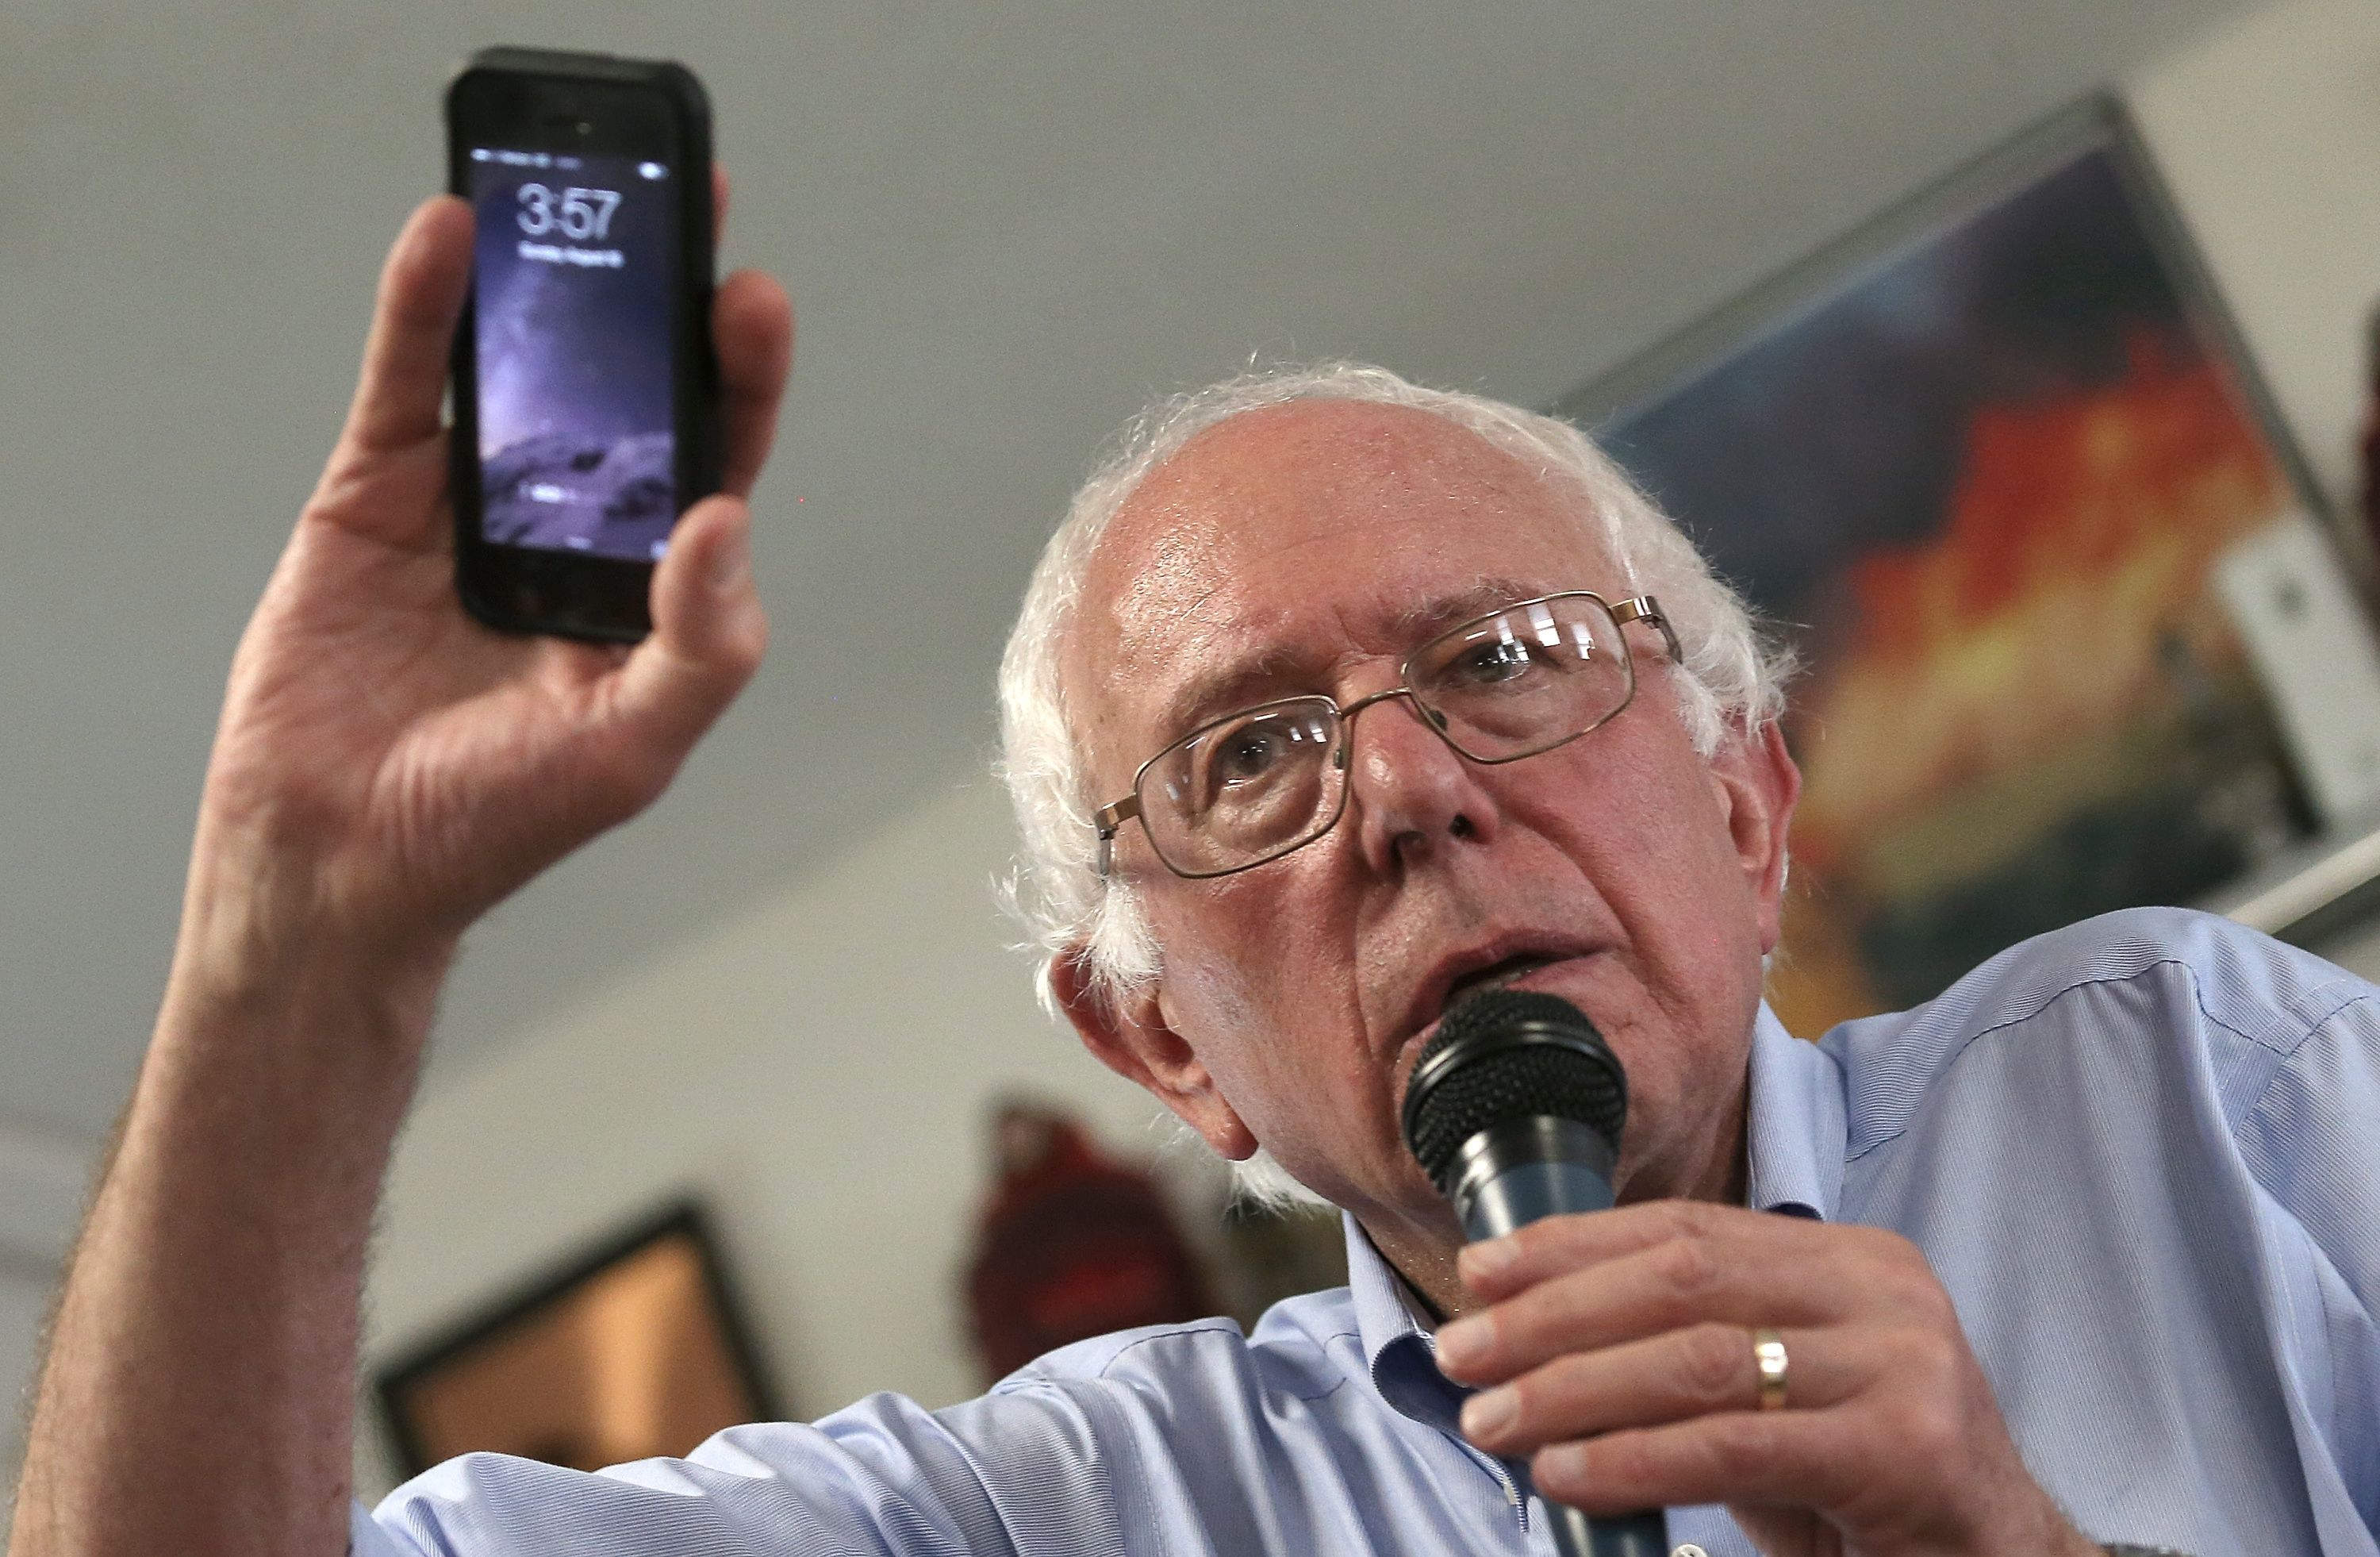 berniephone.jpg